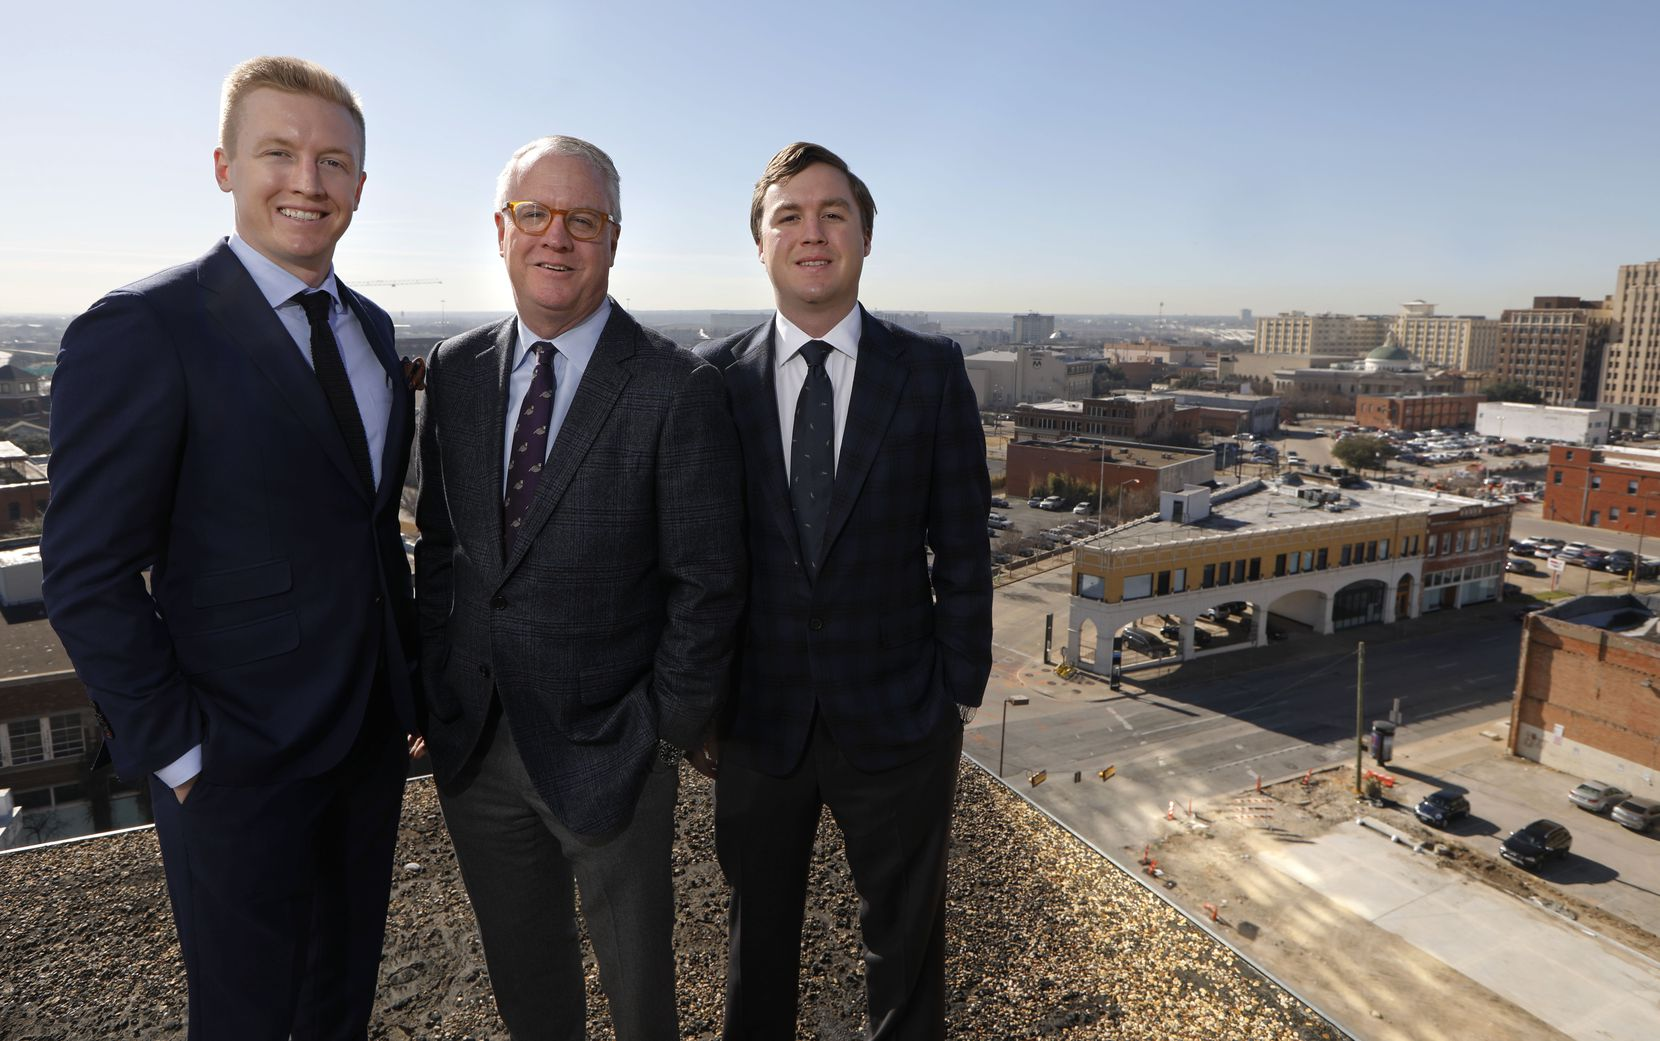 Shawn Todd (center), founder and CEO of Todd Interests, and sons Patrick (left) and Philip stand on one of their buildings in downtown Dallas.